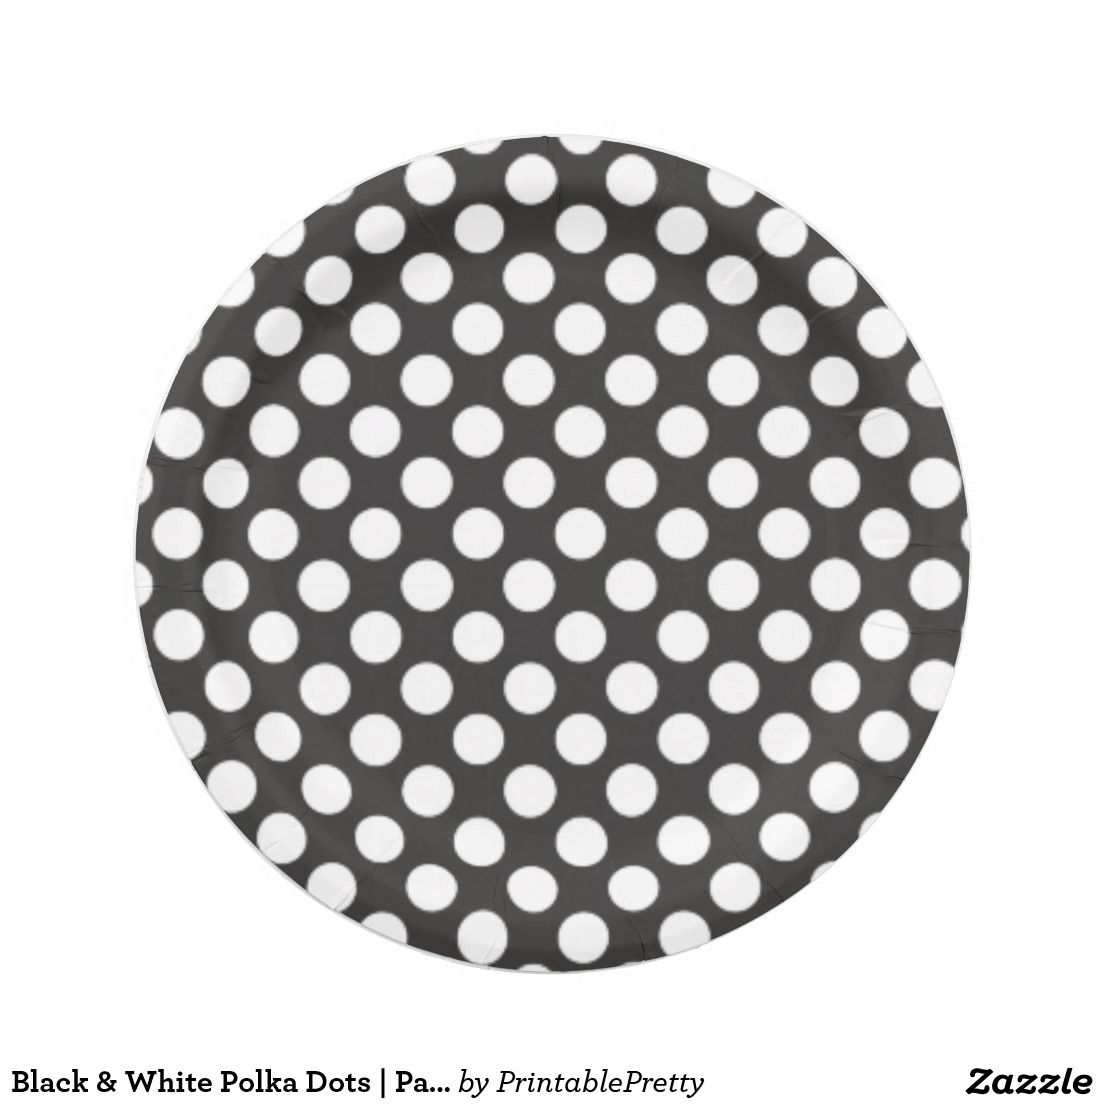 Black u0026 White Polka Dots | Paper Plates  sc 1 st  Pinterest & Black u0026 White Polka Dots | Paper Plates | Custom Party PAPER PLATES ...